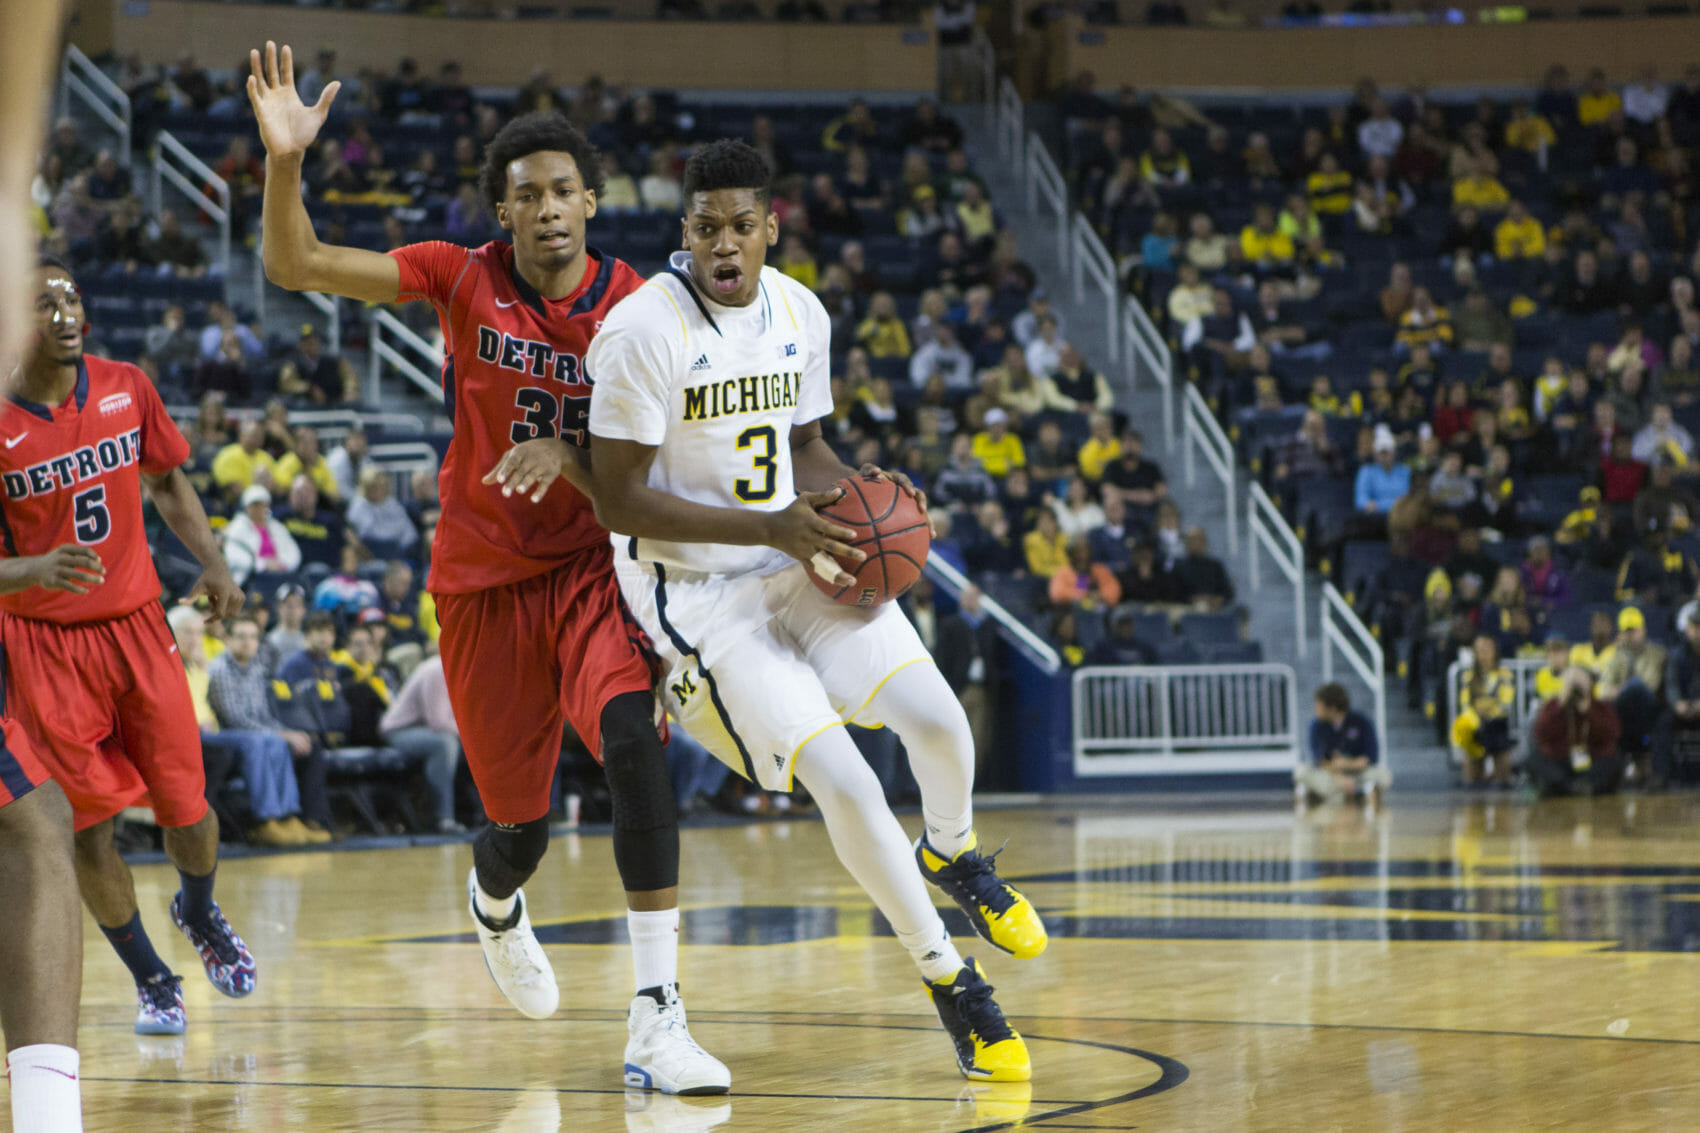 Michigan 71, Detroit 62 -#17